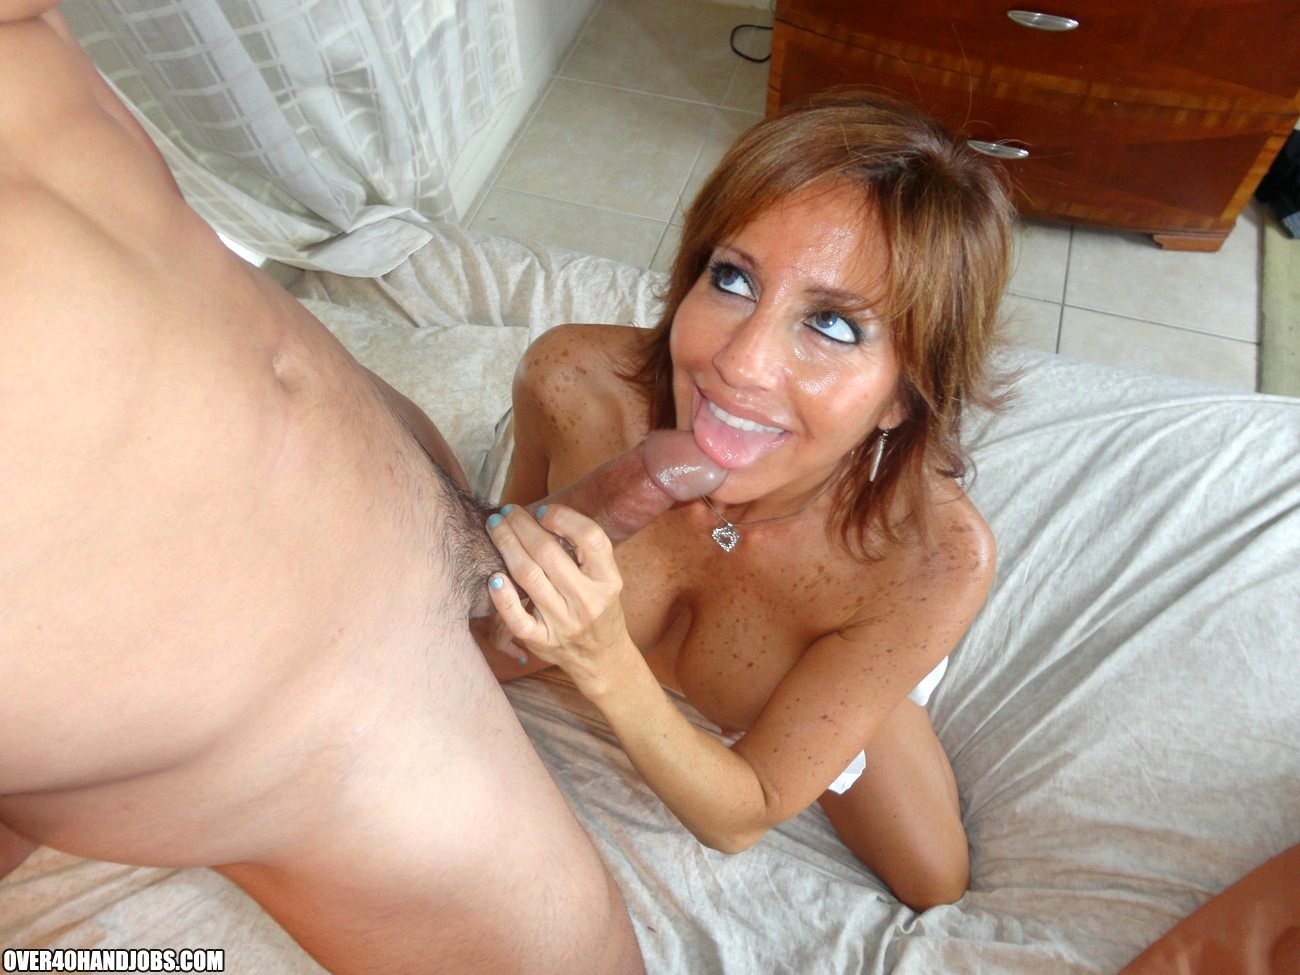 Babe Today Over 40 Handjobs Tara Holiday Lovest Milf Vip -1837